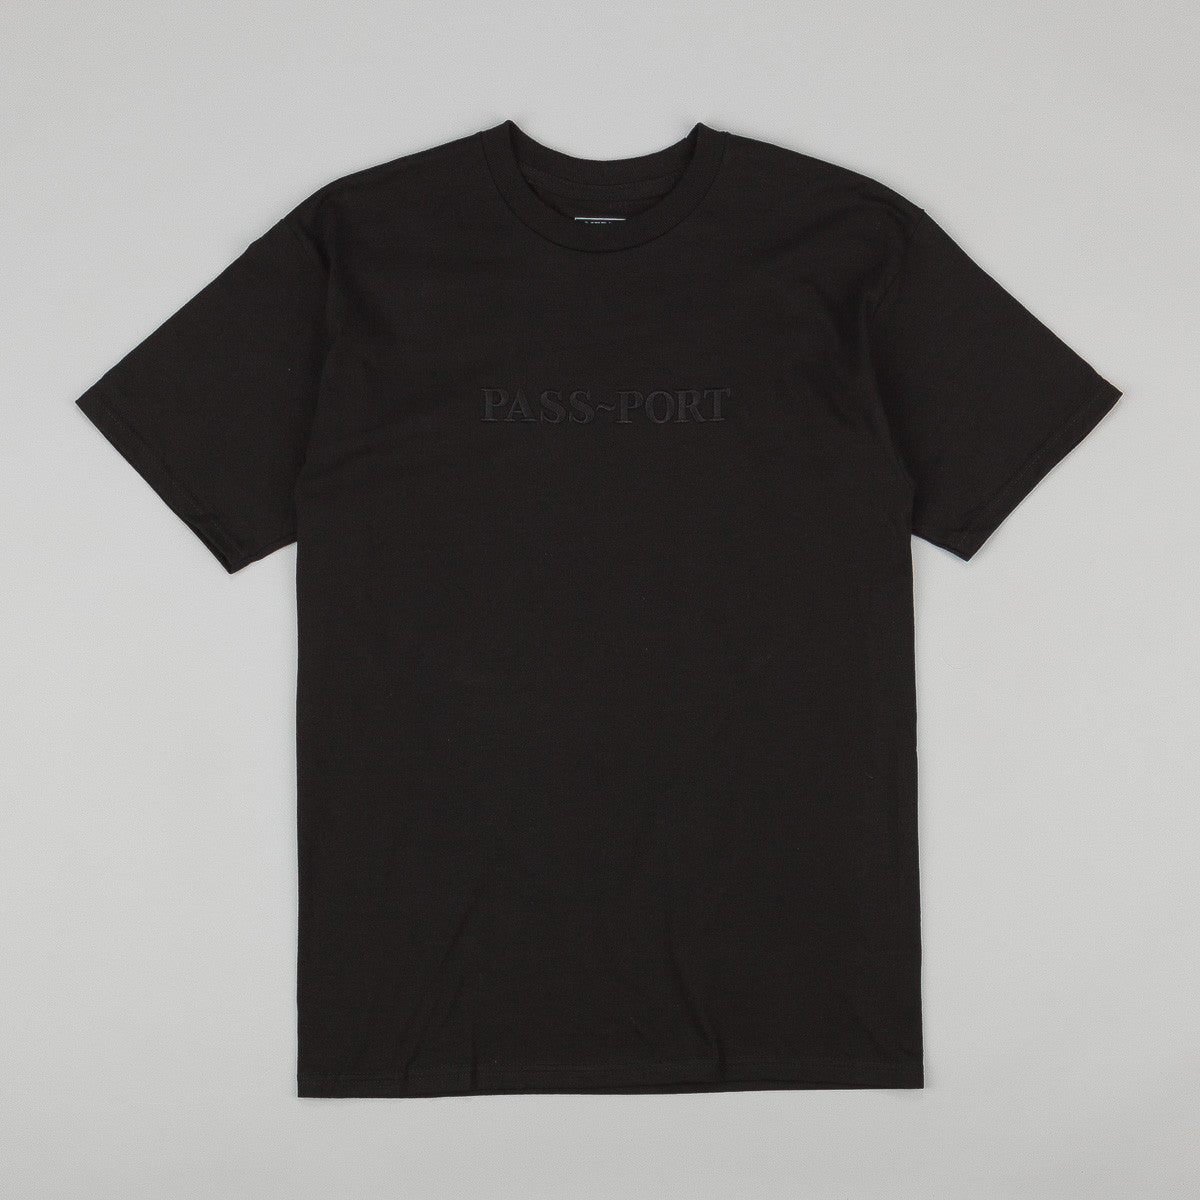 Pass Port Official Embroidery T-Shirt - Black